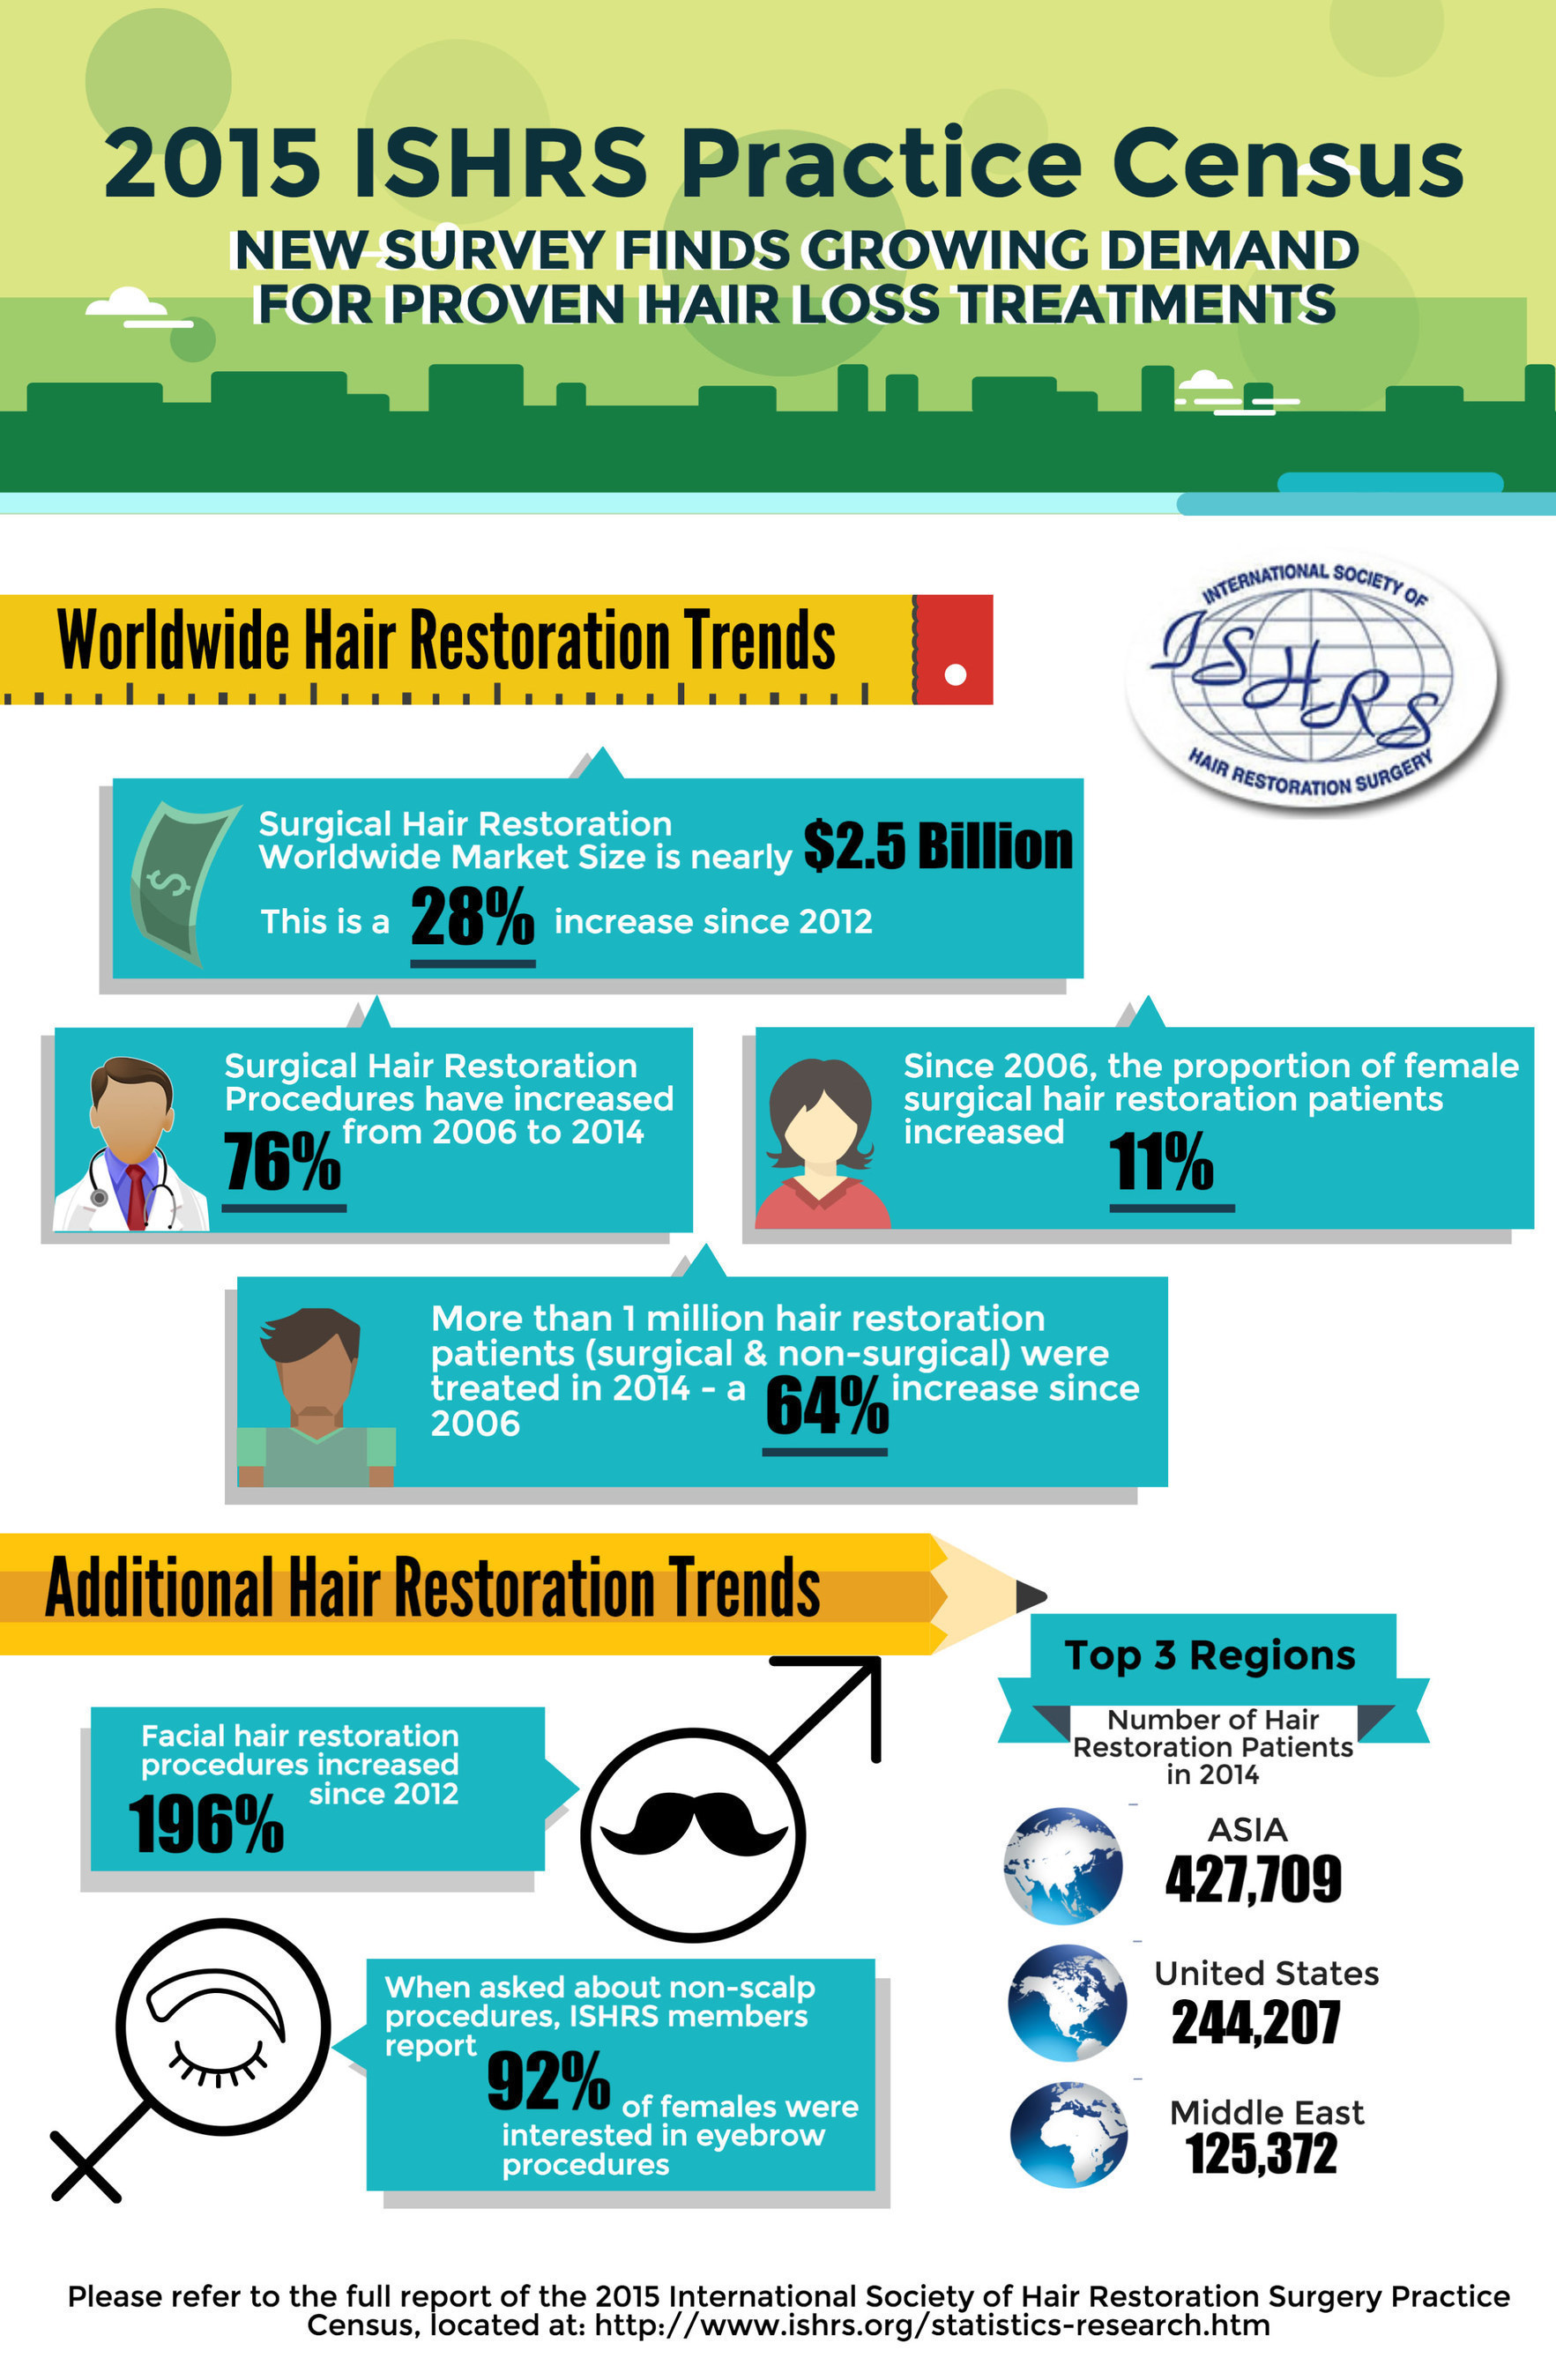 2015 ISHRS Practice Census: New Survey Finds Growing Demand For Proven Hair Loss Treatments